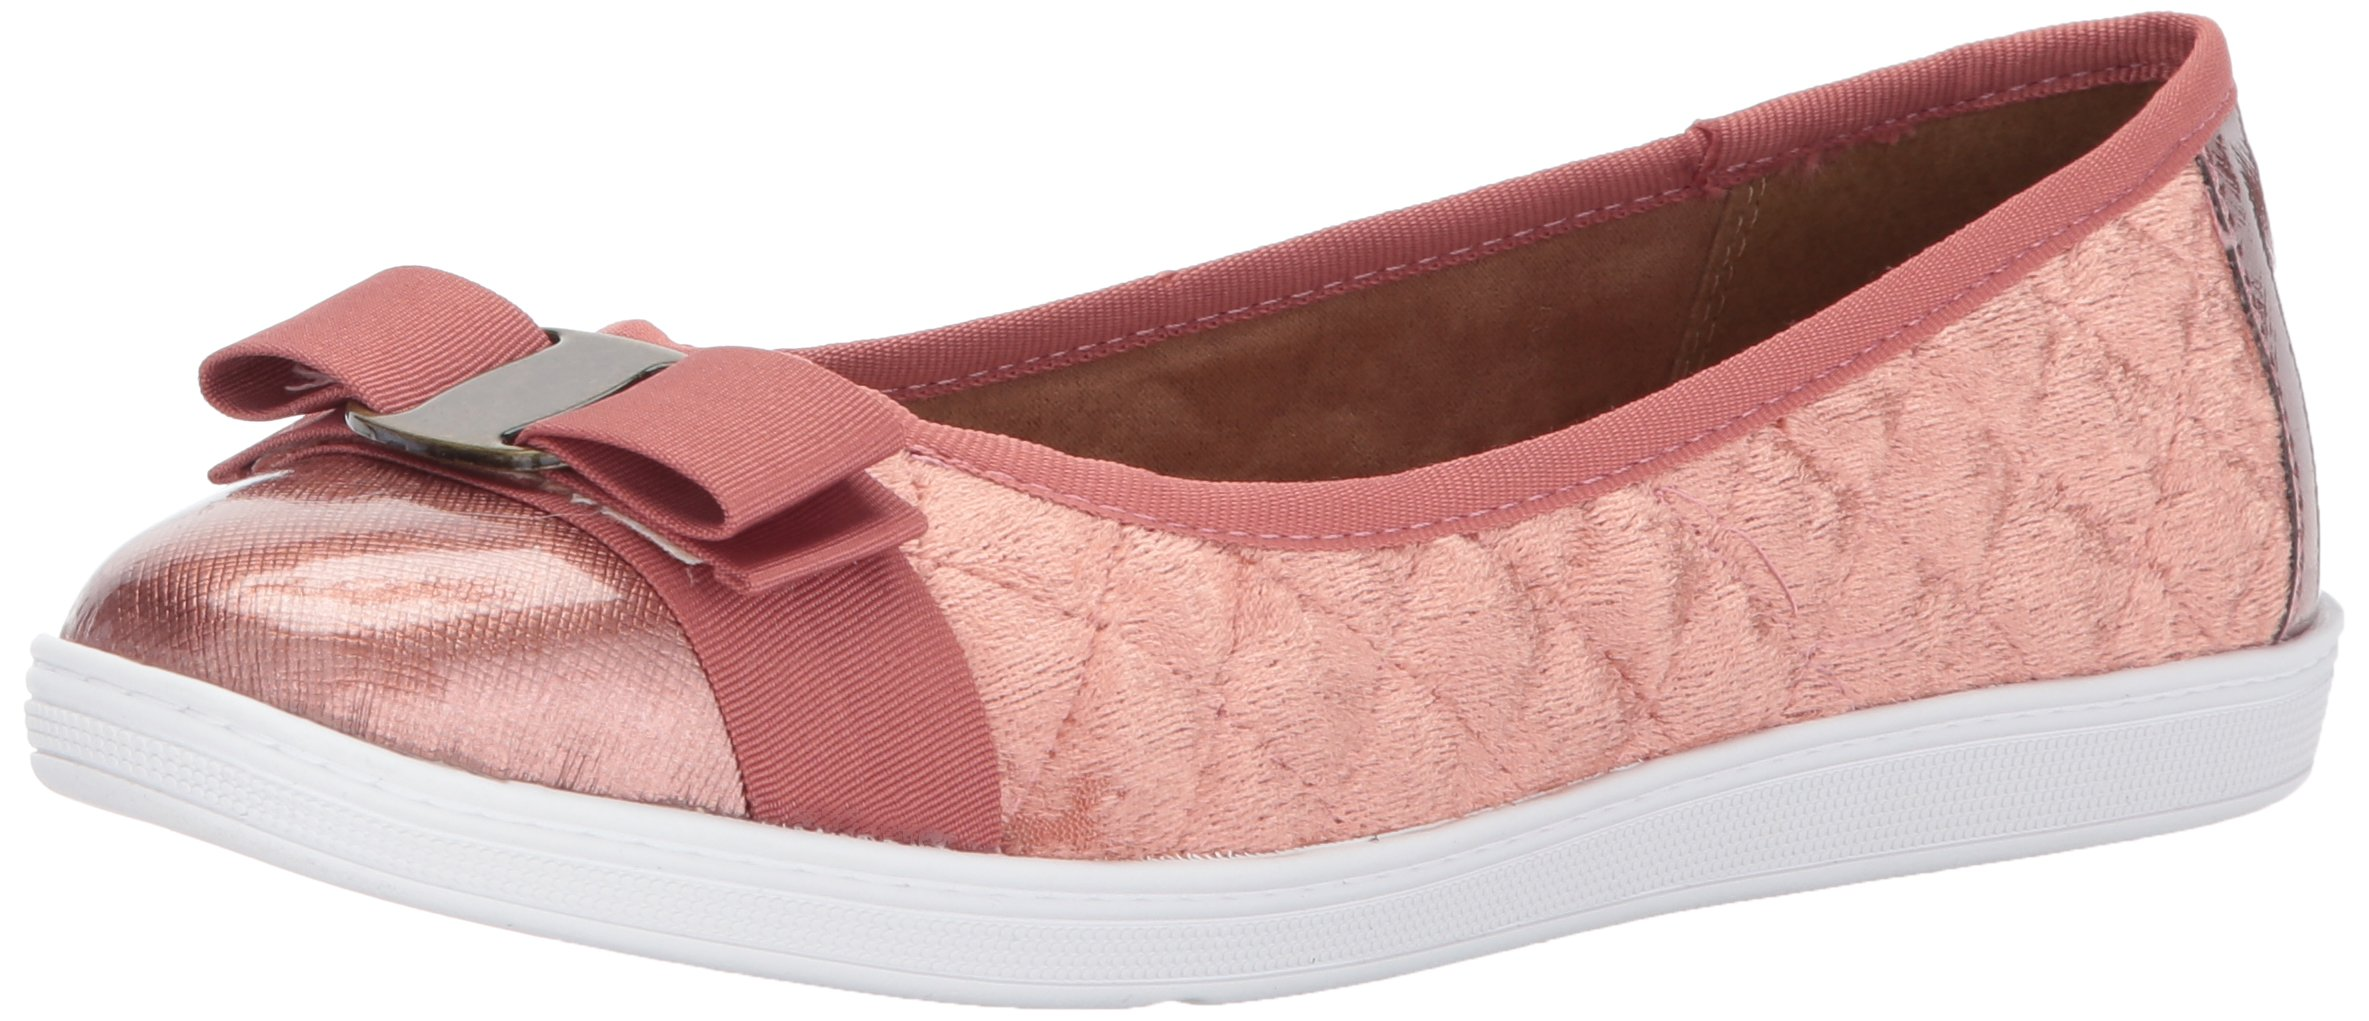 Soft Style Hush Puppies Women's Faeth Flat, Antique Rose Velvet, 9 M US by Soft Style